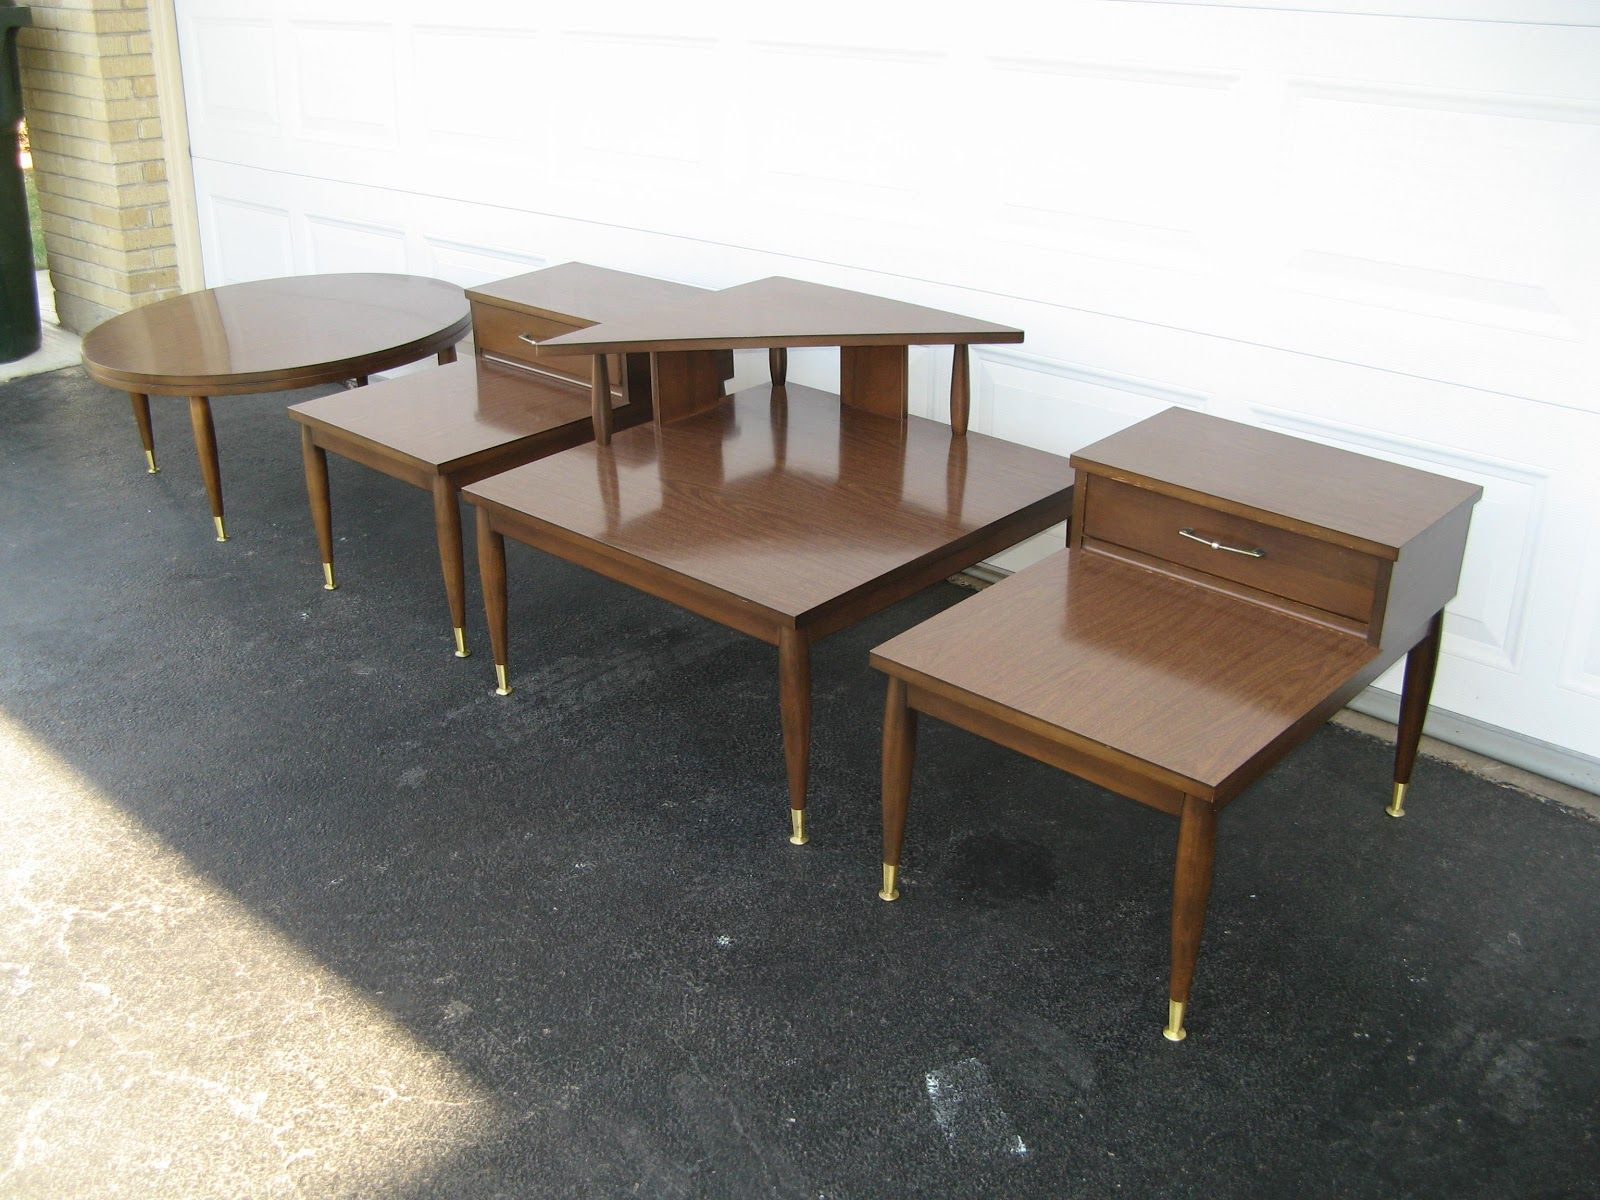 Vintage Mersman End Tables Corner Table and Coffee Table Set is